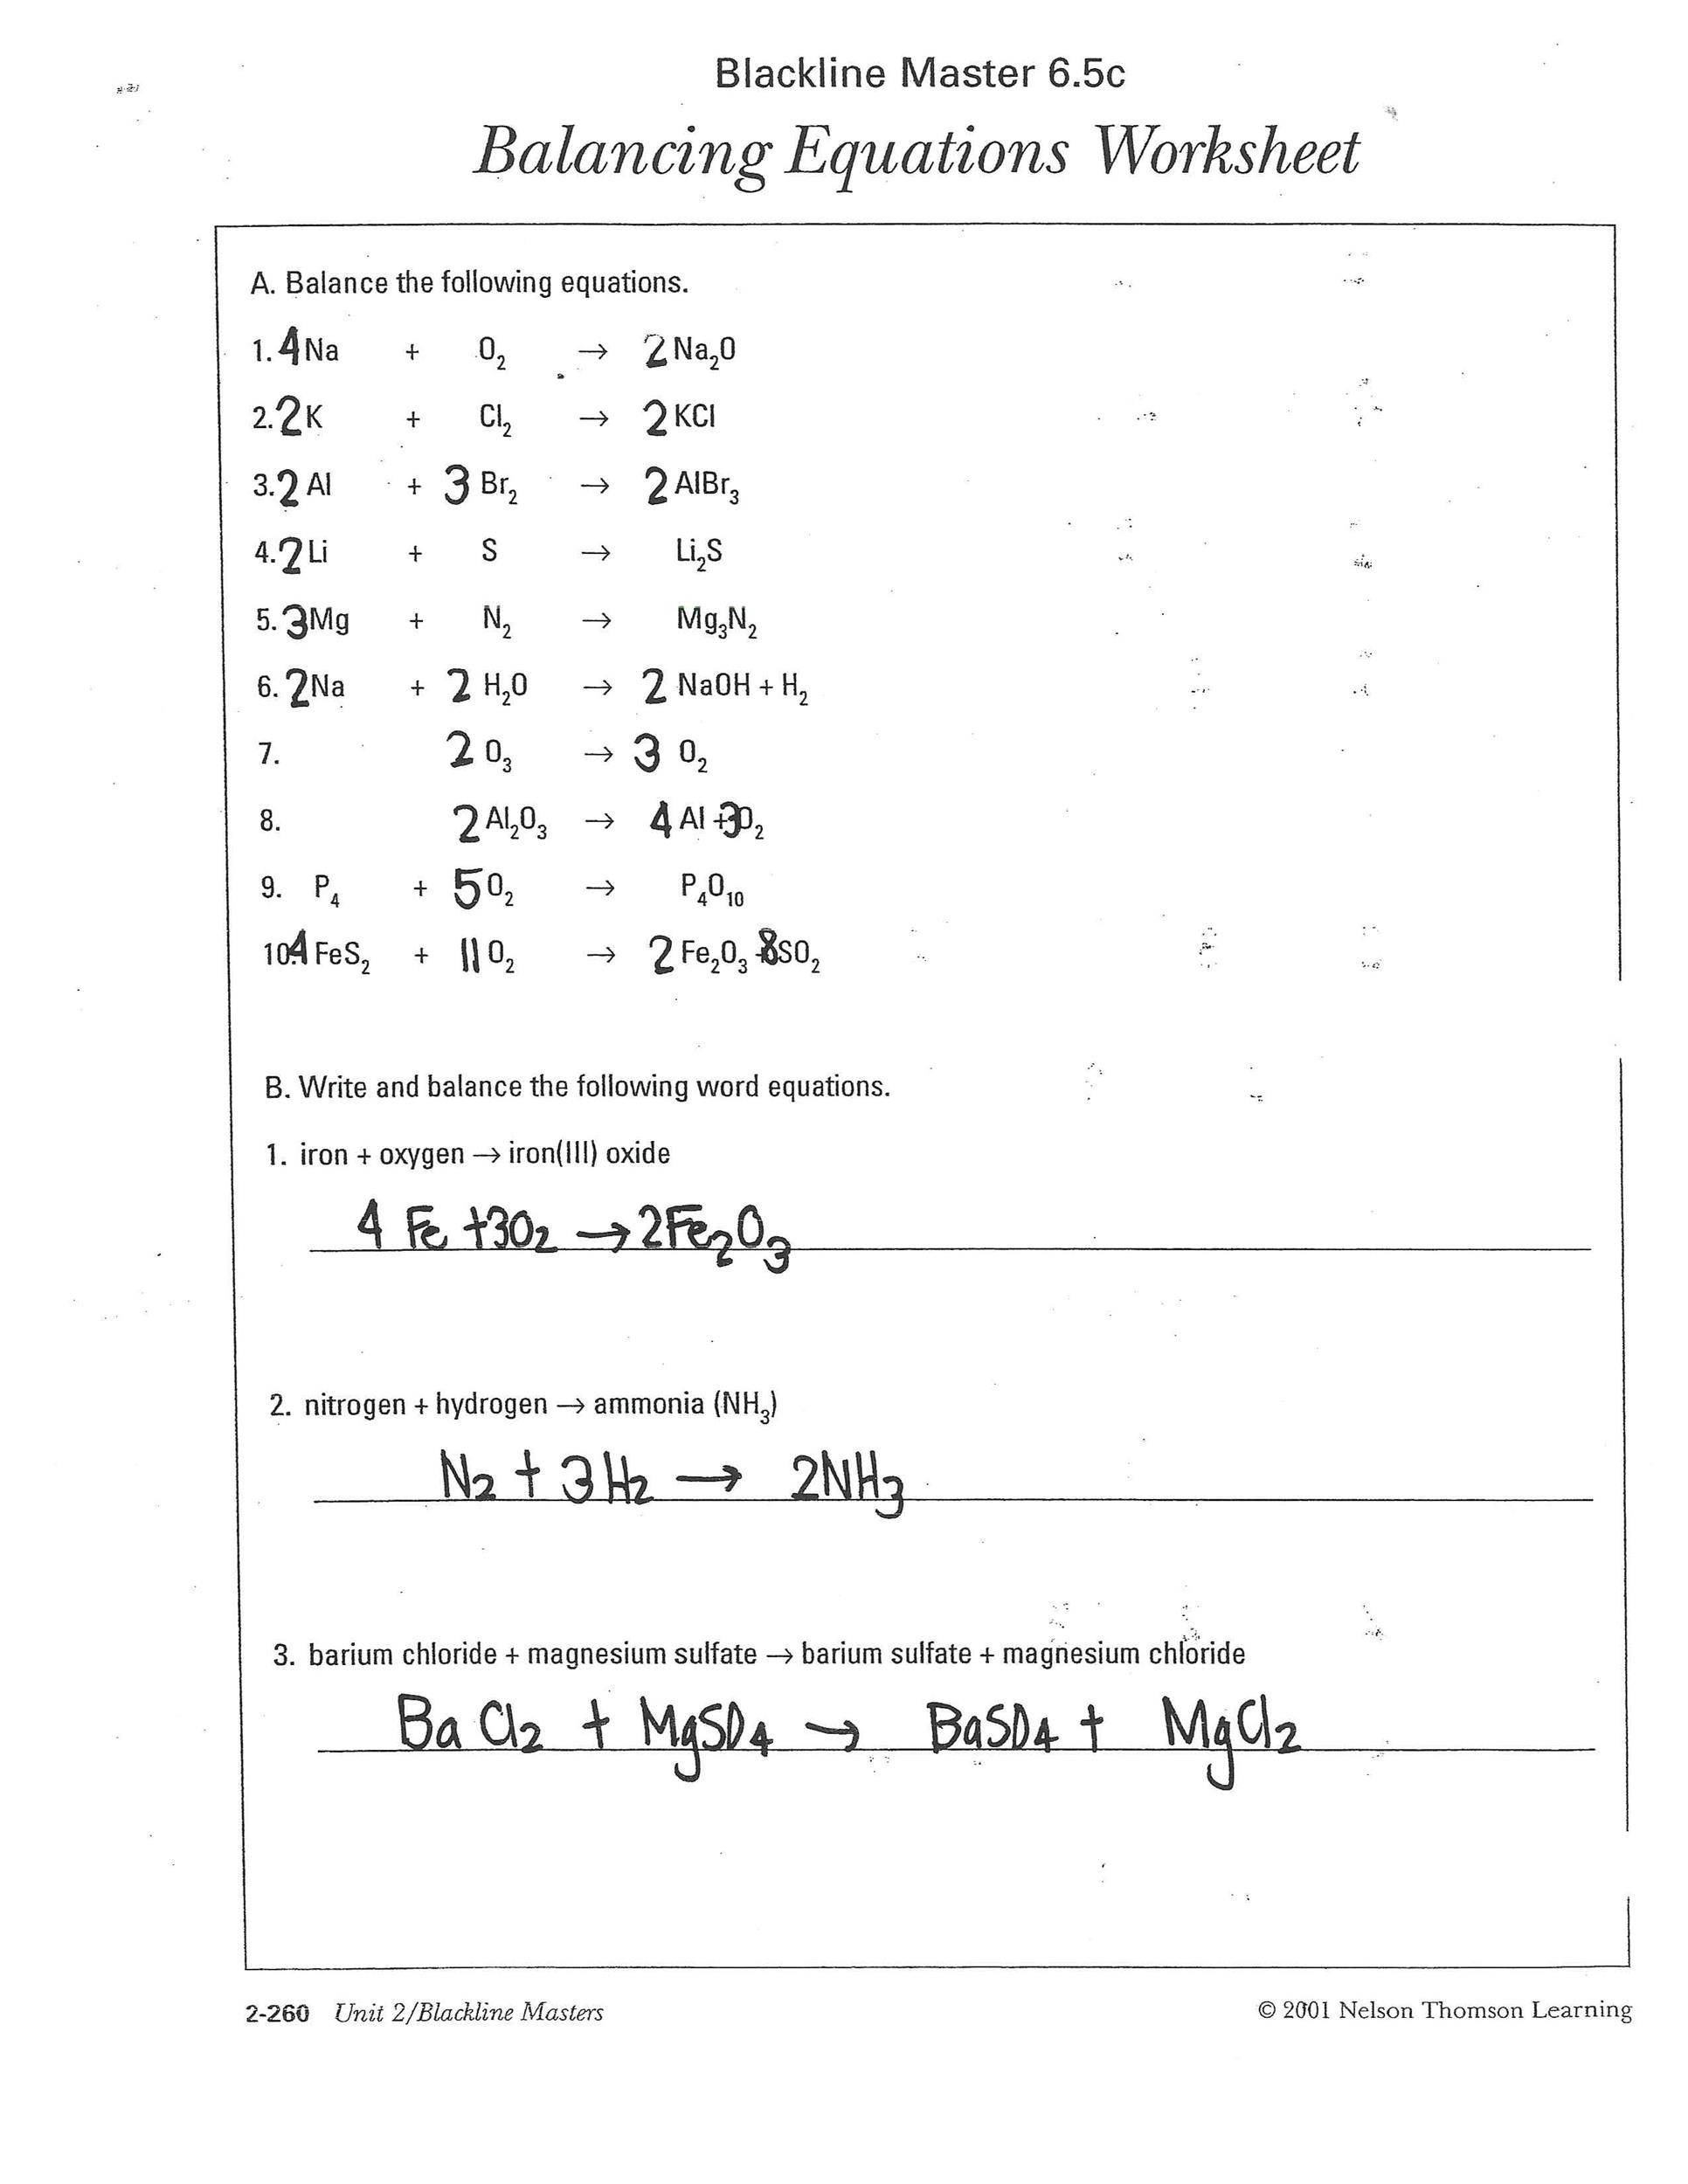 Word Equations Worksheet Answers With Work